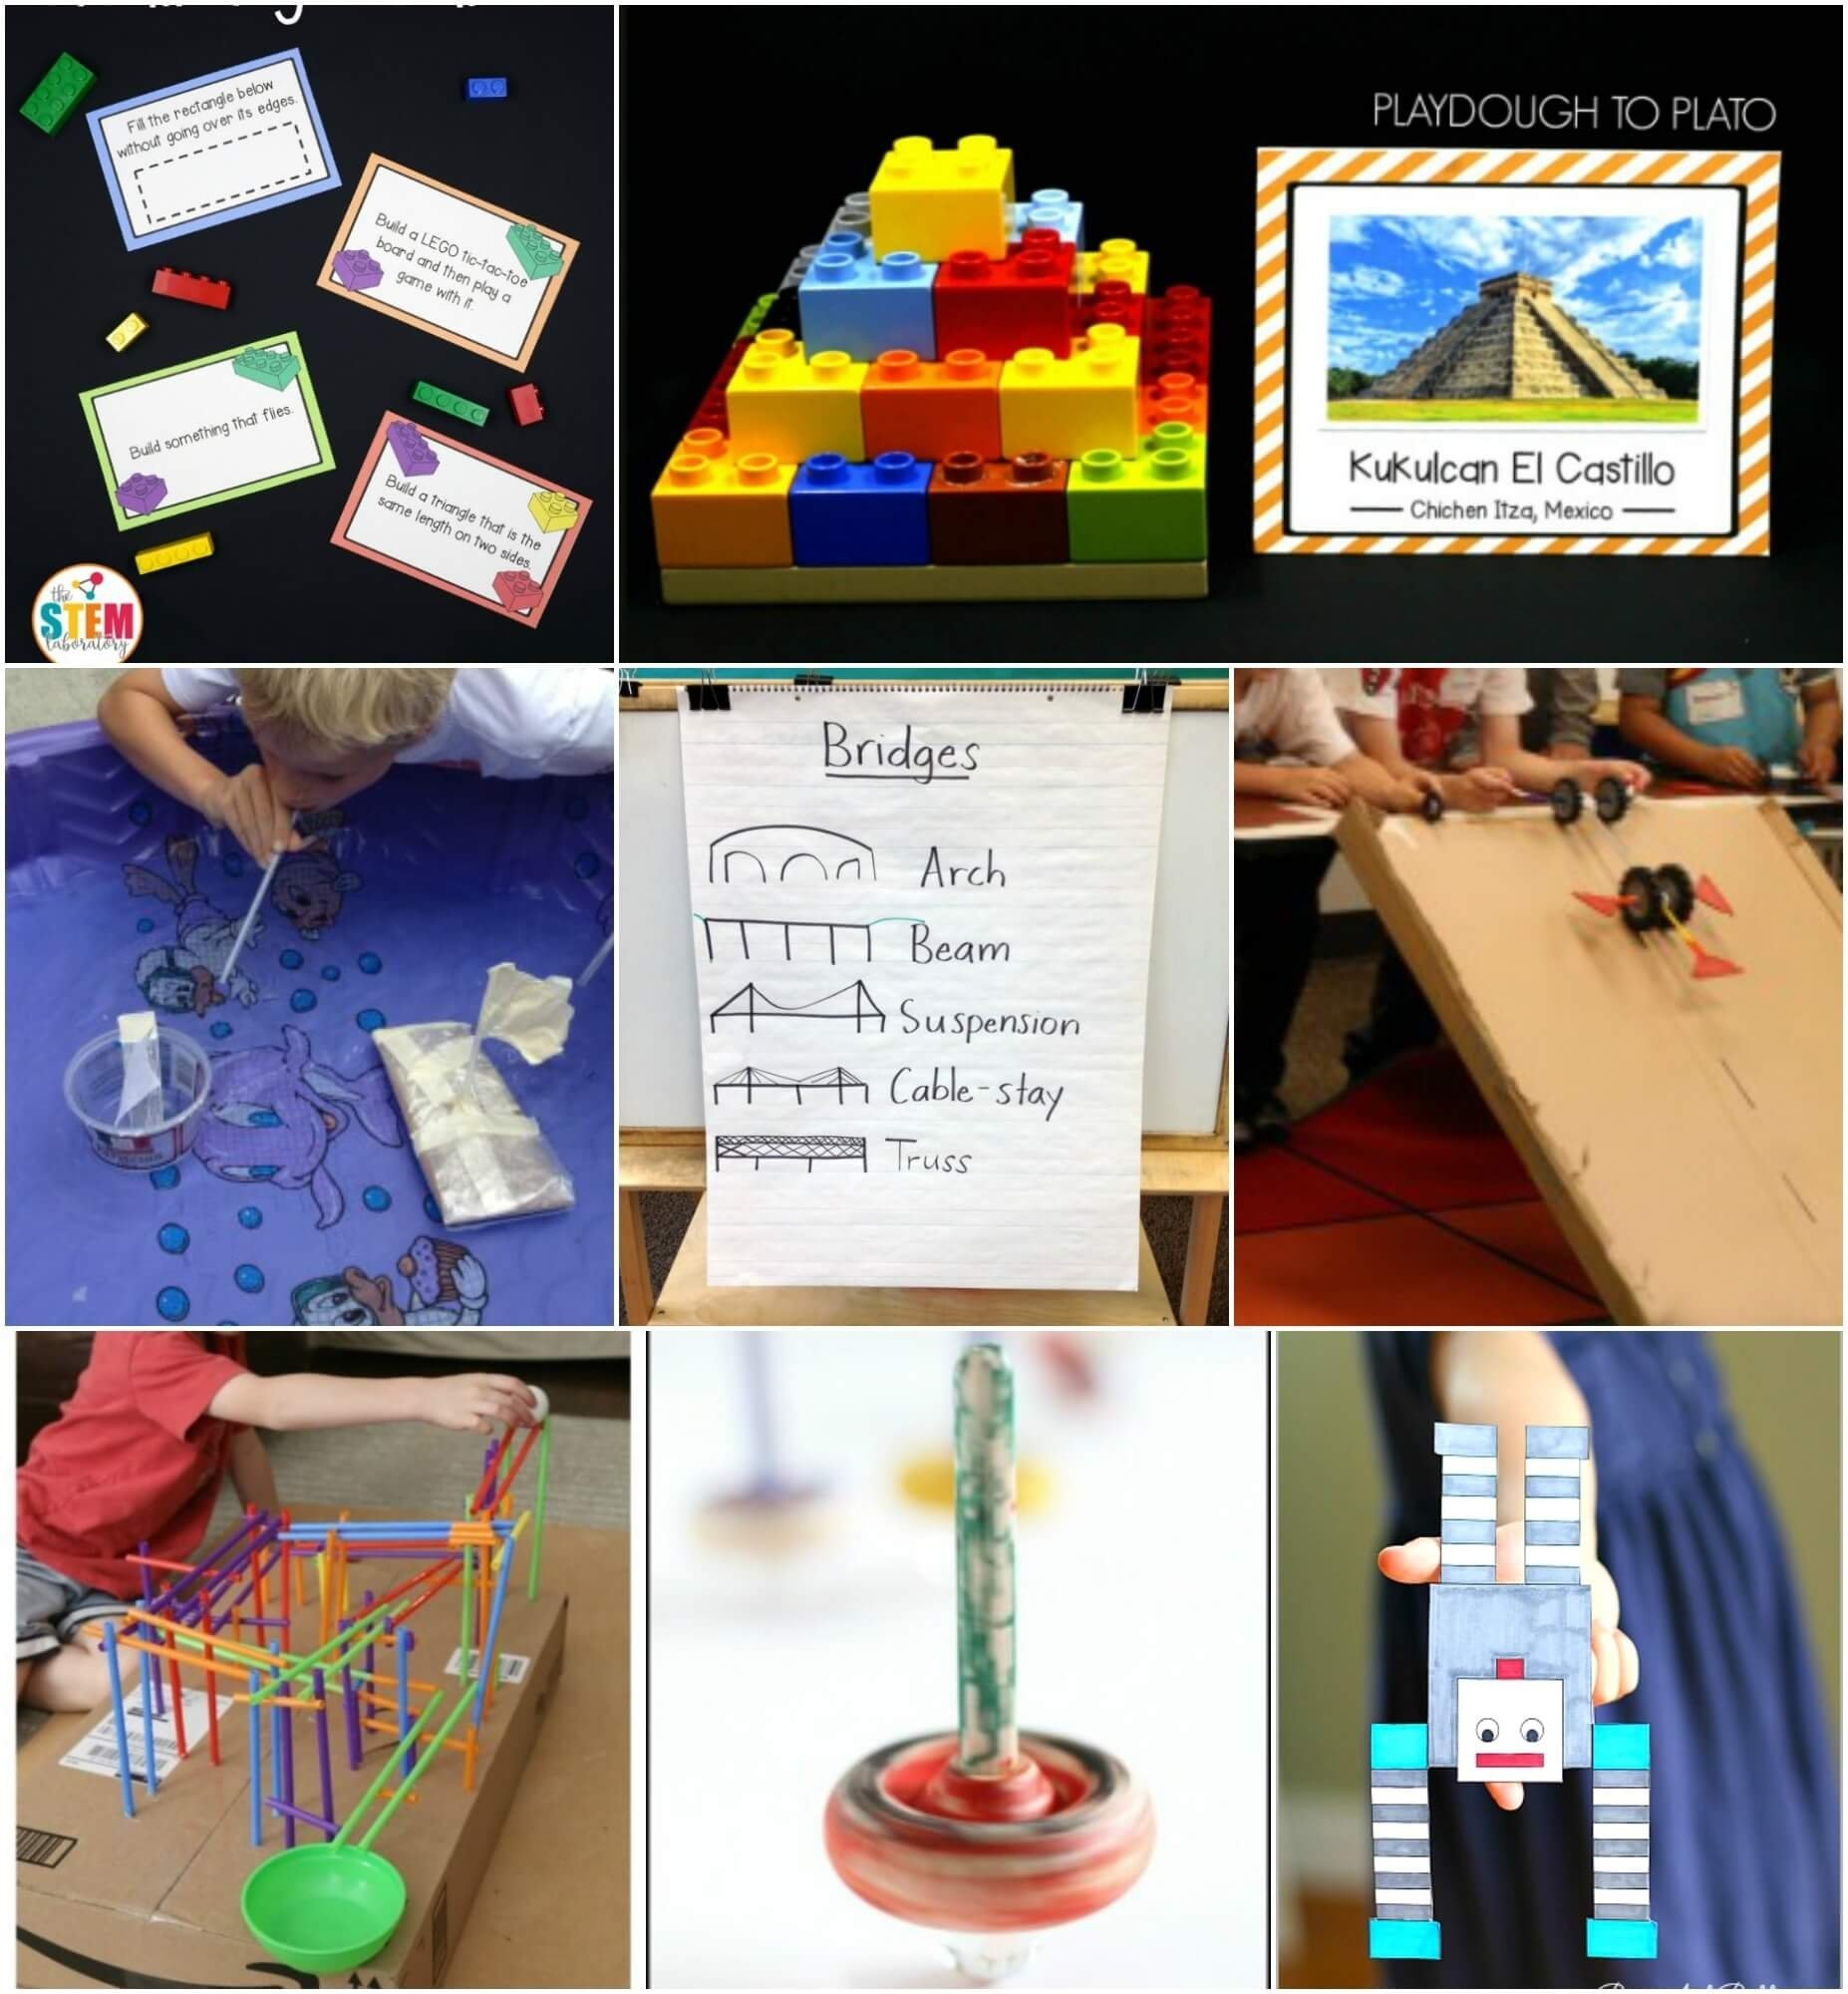 10 Wonderful Stem Project Ideas For Middle School 40 stem activities for kids playdough to plato 1 2021